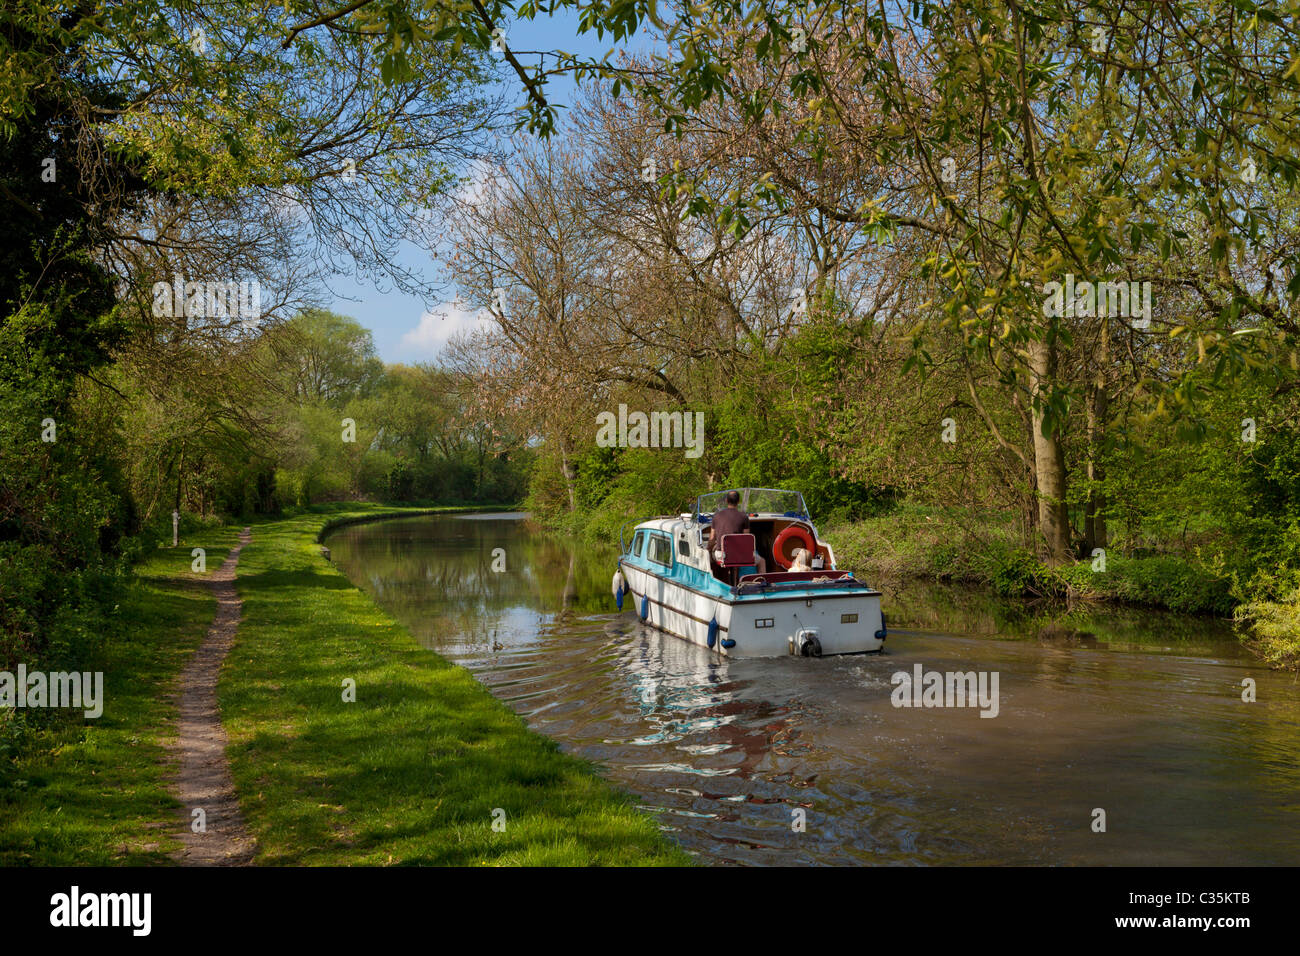 Small motor boat on the Trent and Mersey Canal near Aston on Trent Derbyshire England UK GB EU Europe - Stock Image